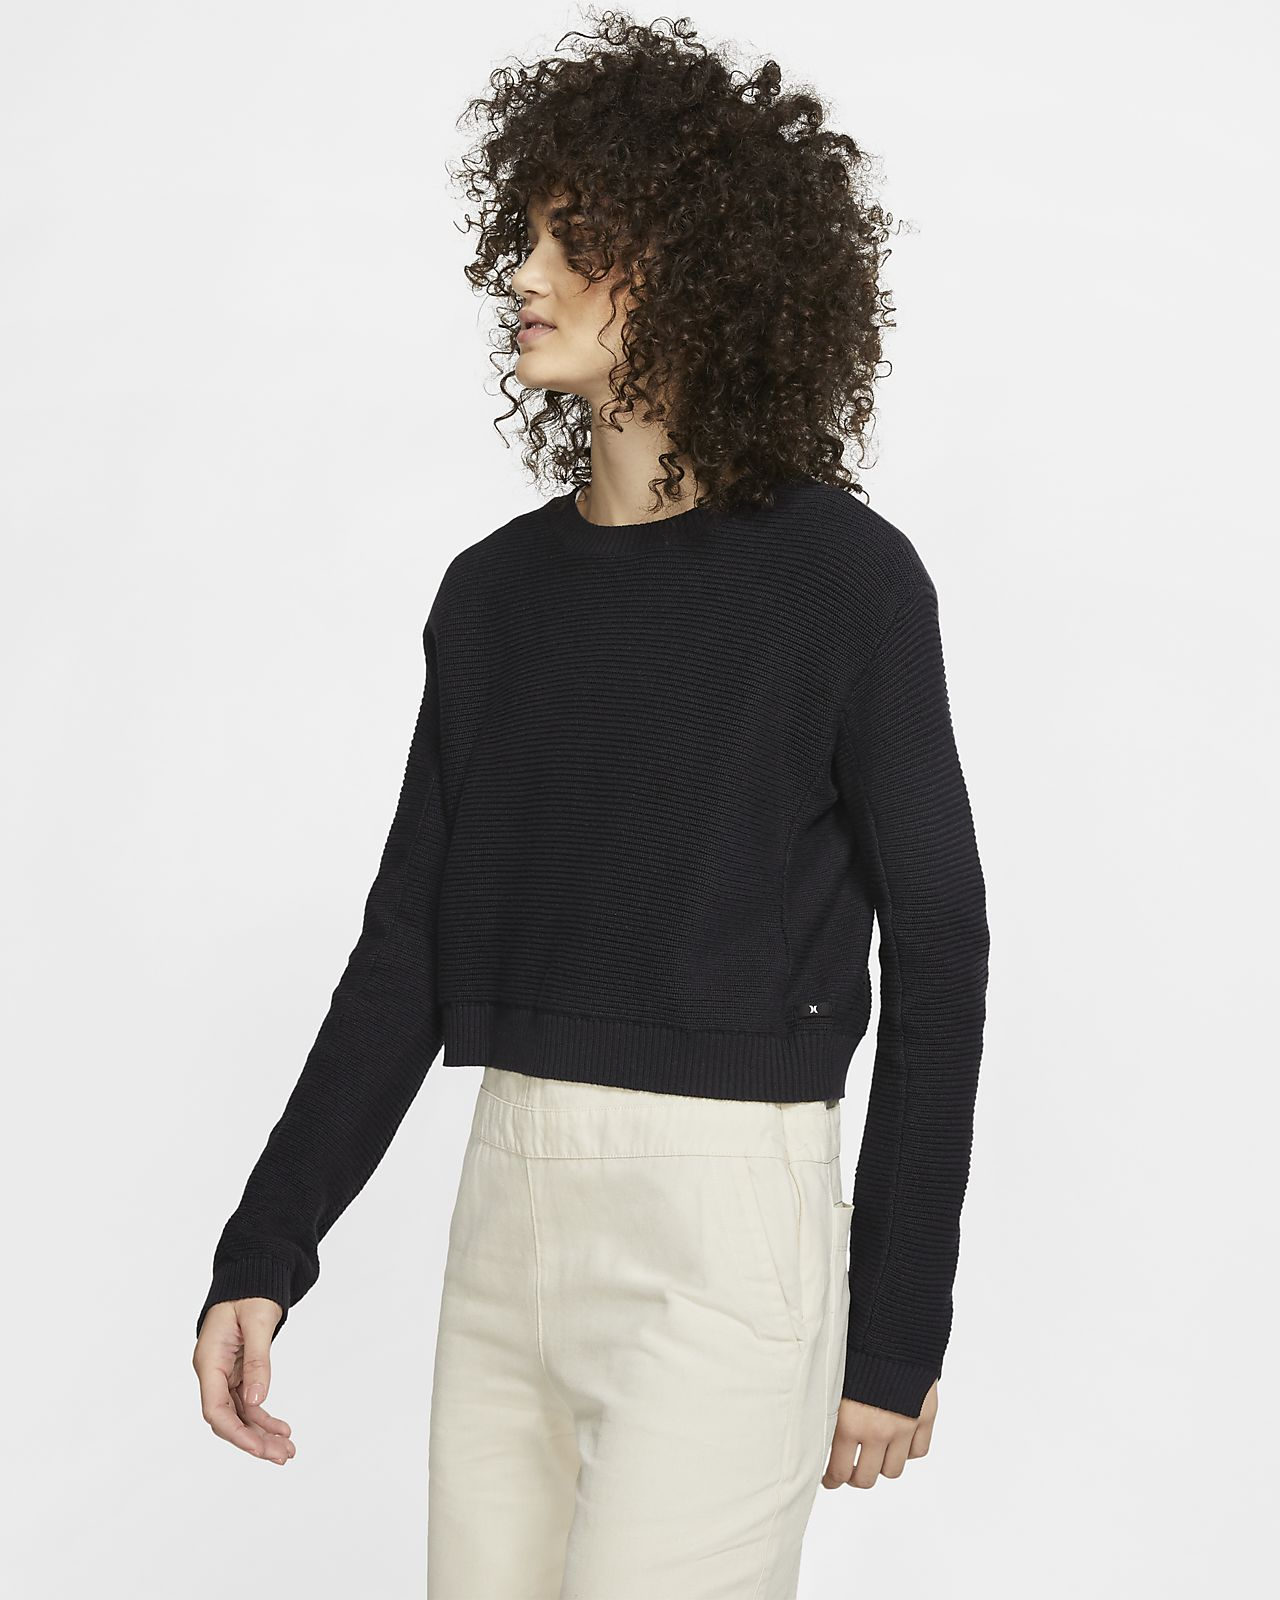 Hurley Sweater Weather Damen-Pullover